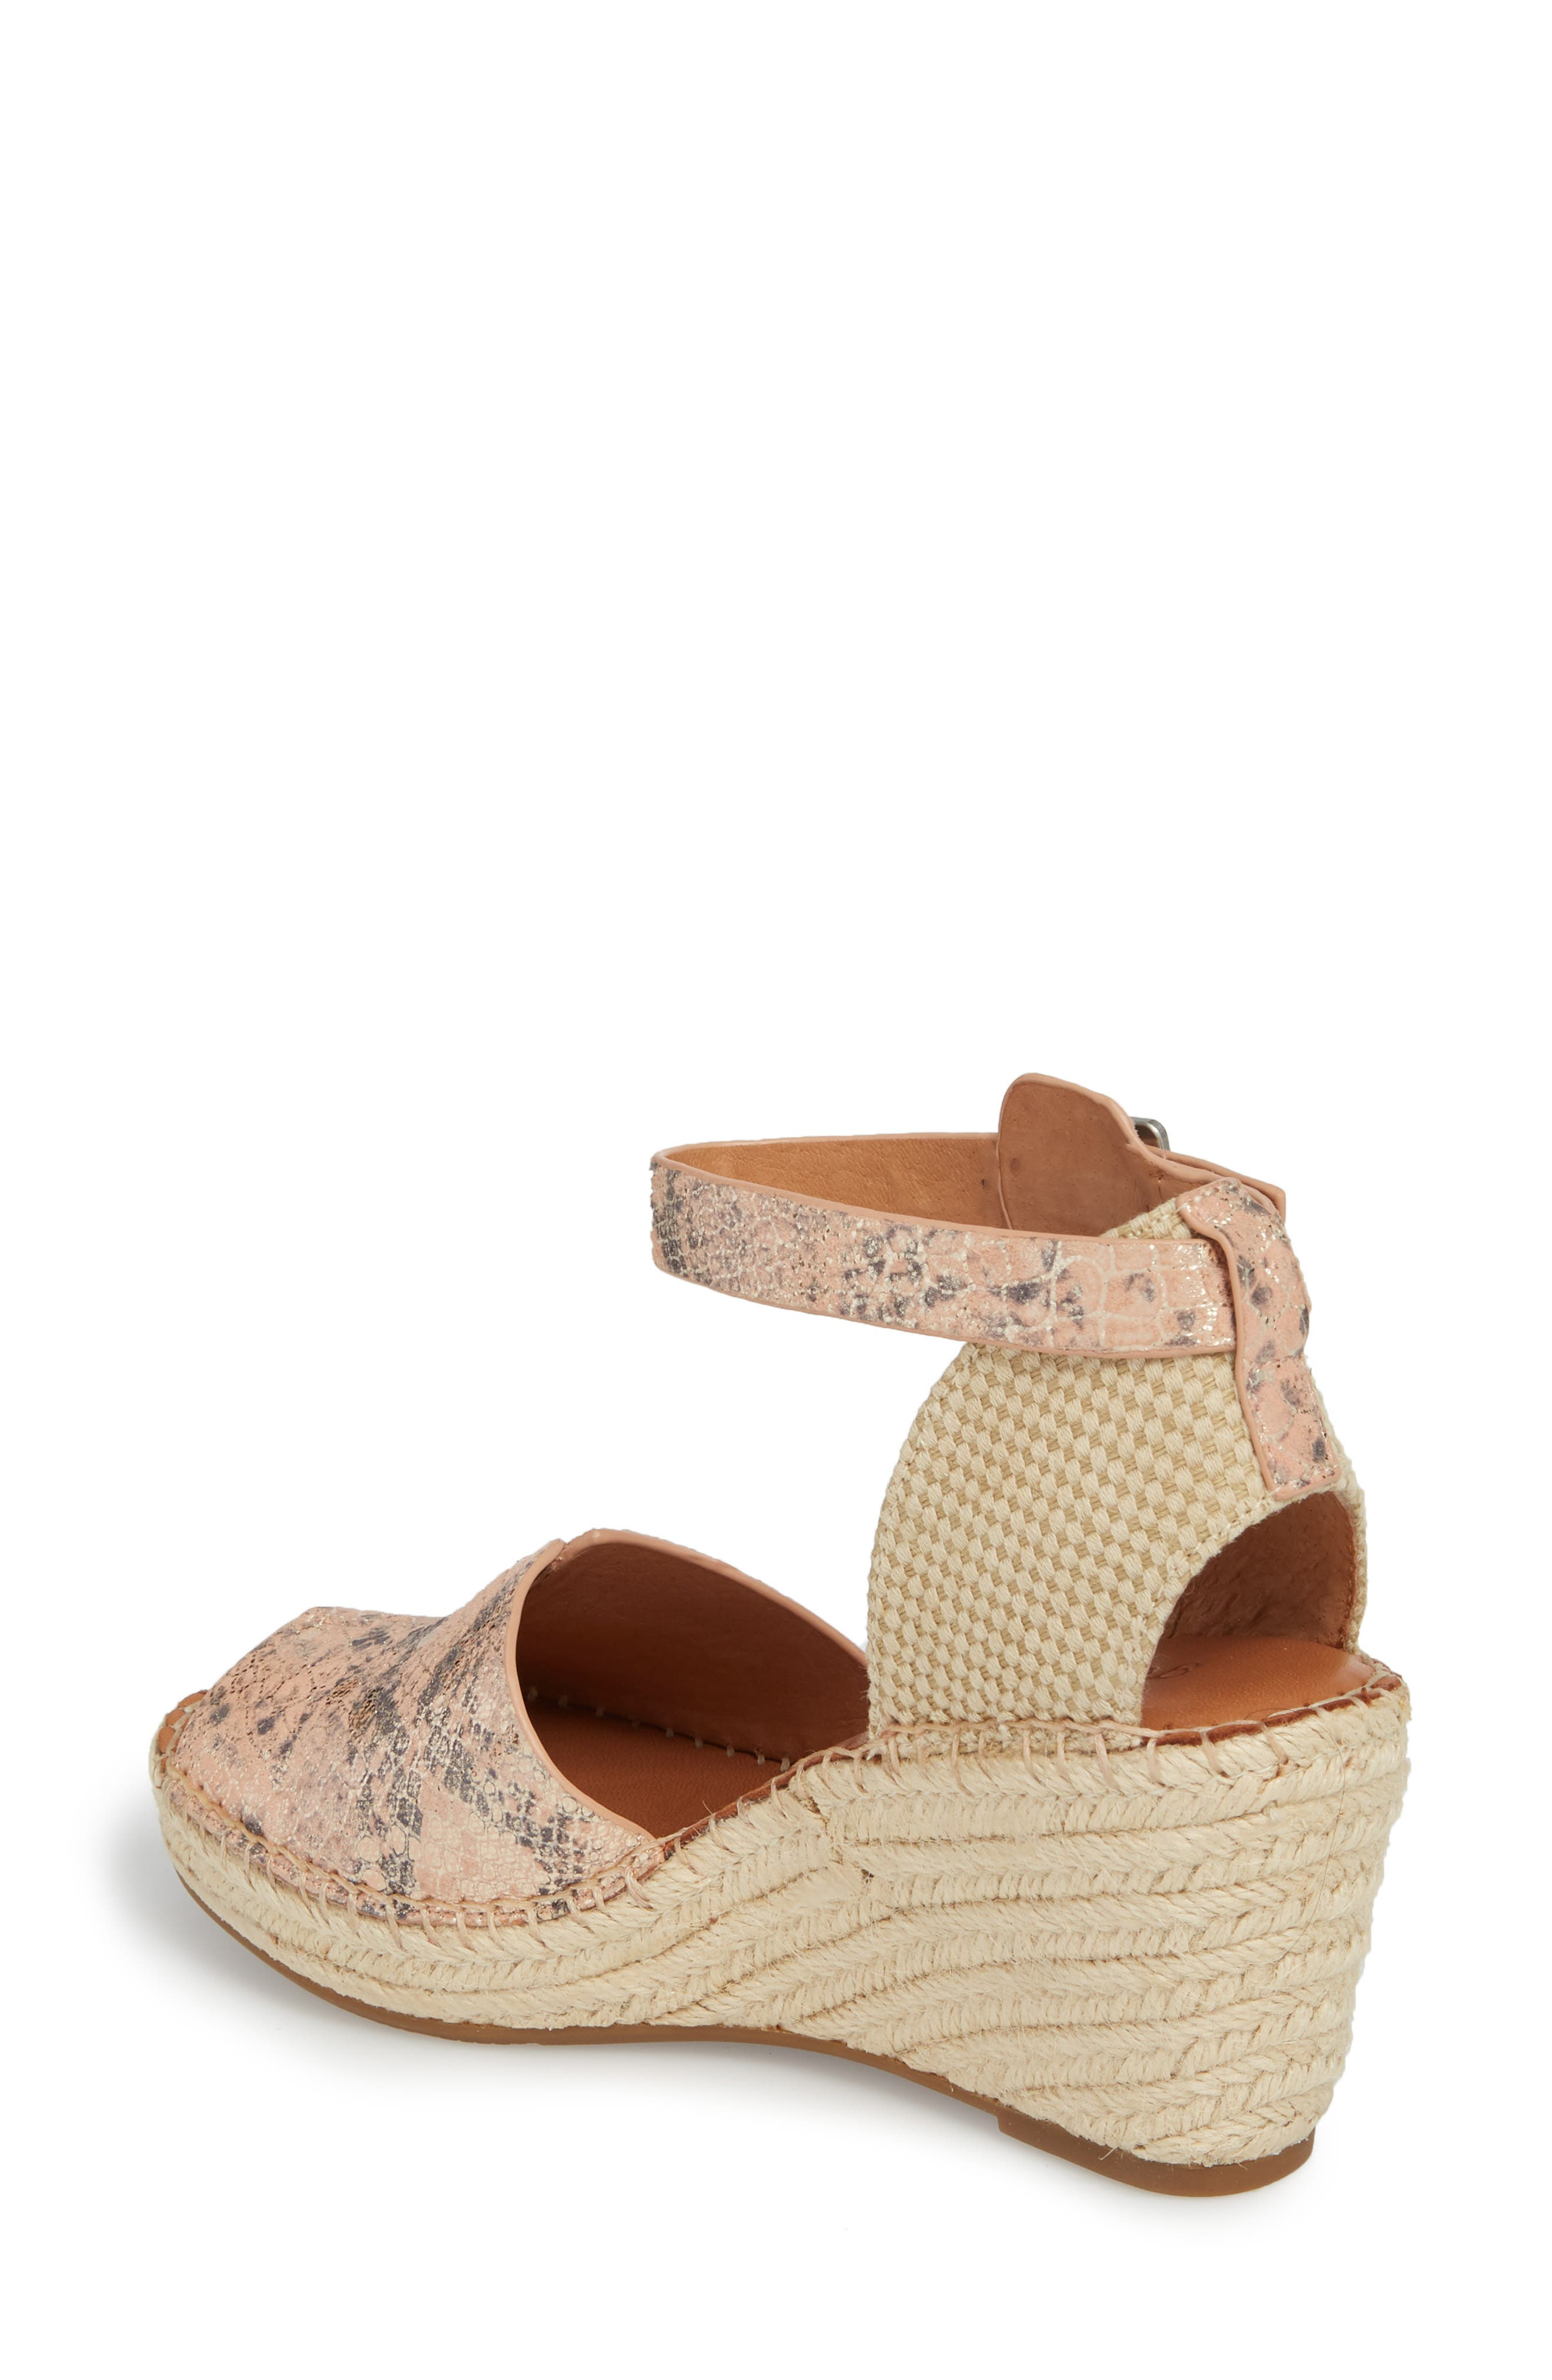 GENTLE SOULS BY KENNETH COLE, Charli Espadrille Wedge, Alternate thumbnail 2, color, ROSE METALLIC LEATHER